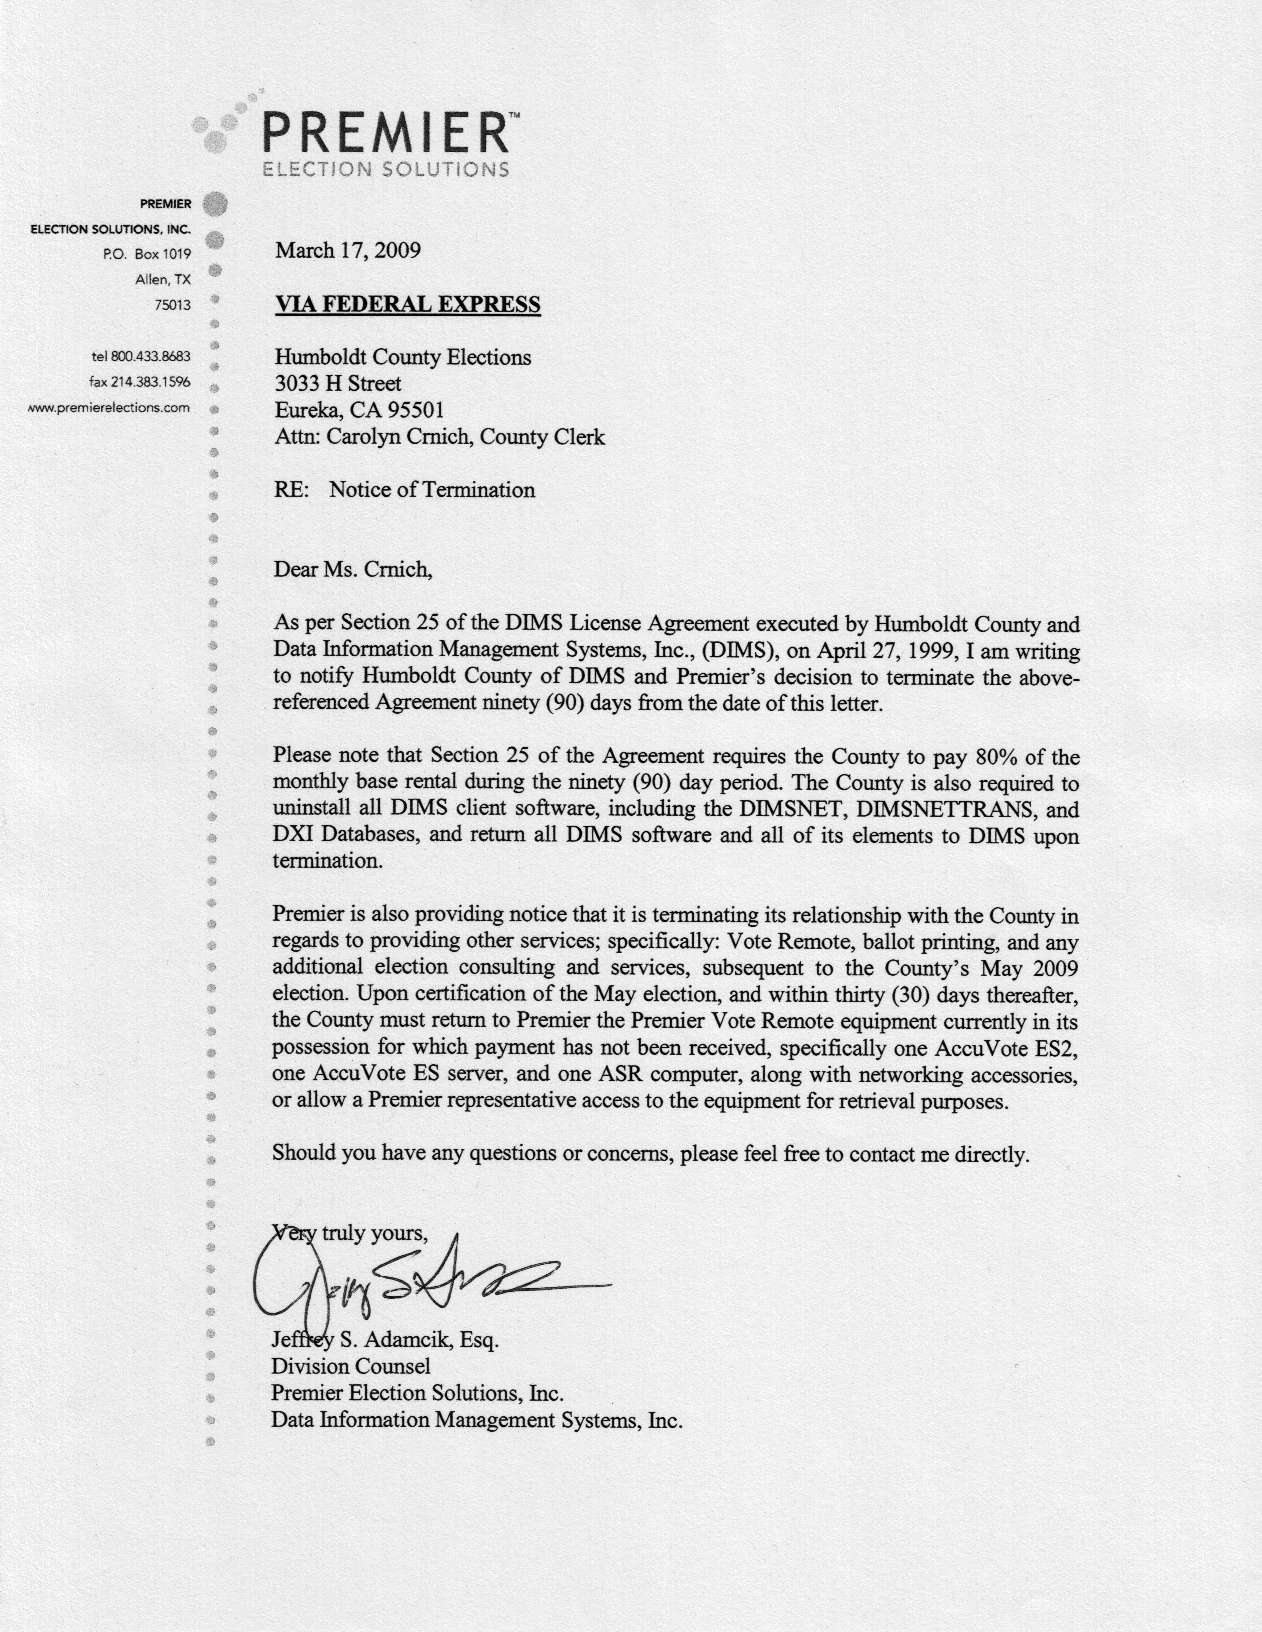 disclosed diebold premier s humboldt county termination letters diebold premiere s 17 and 18 2009 termination letters to humboldt county follow below click each for larger versions